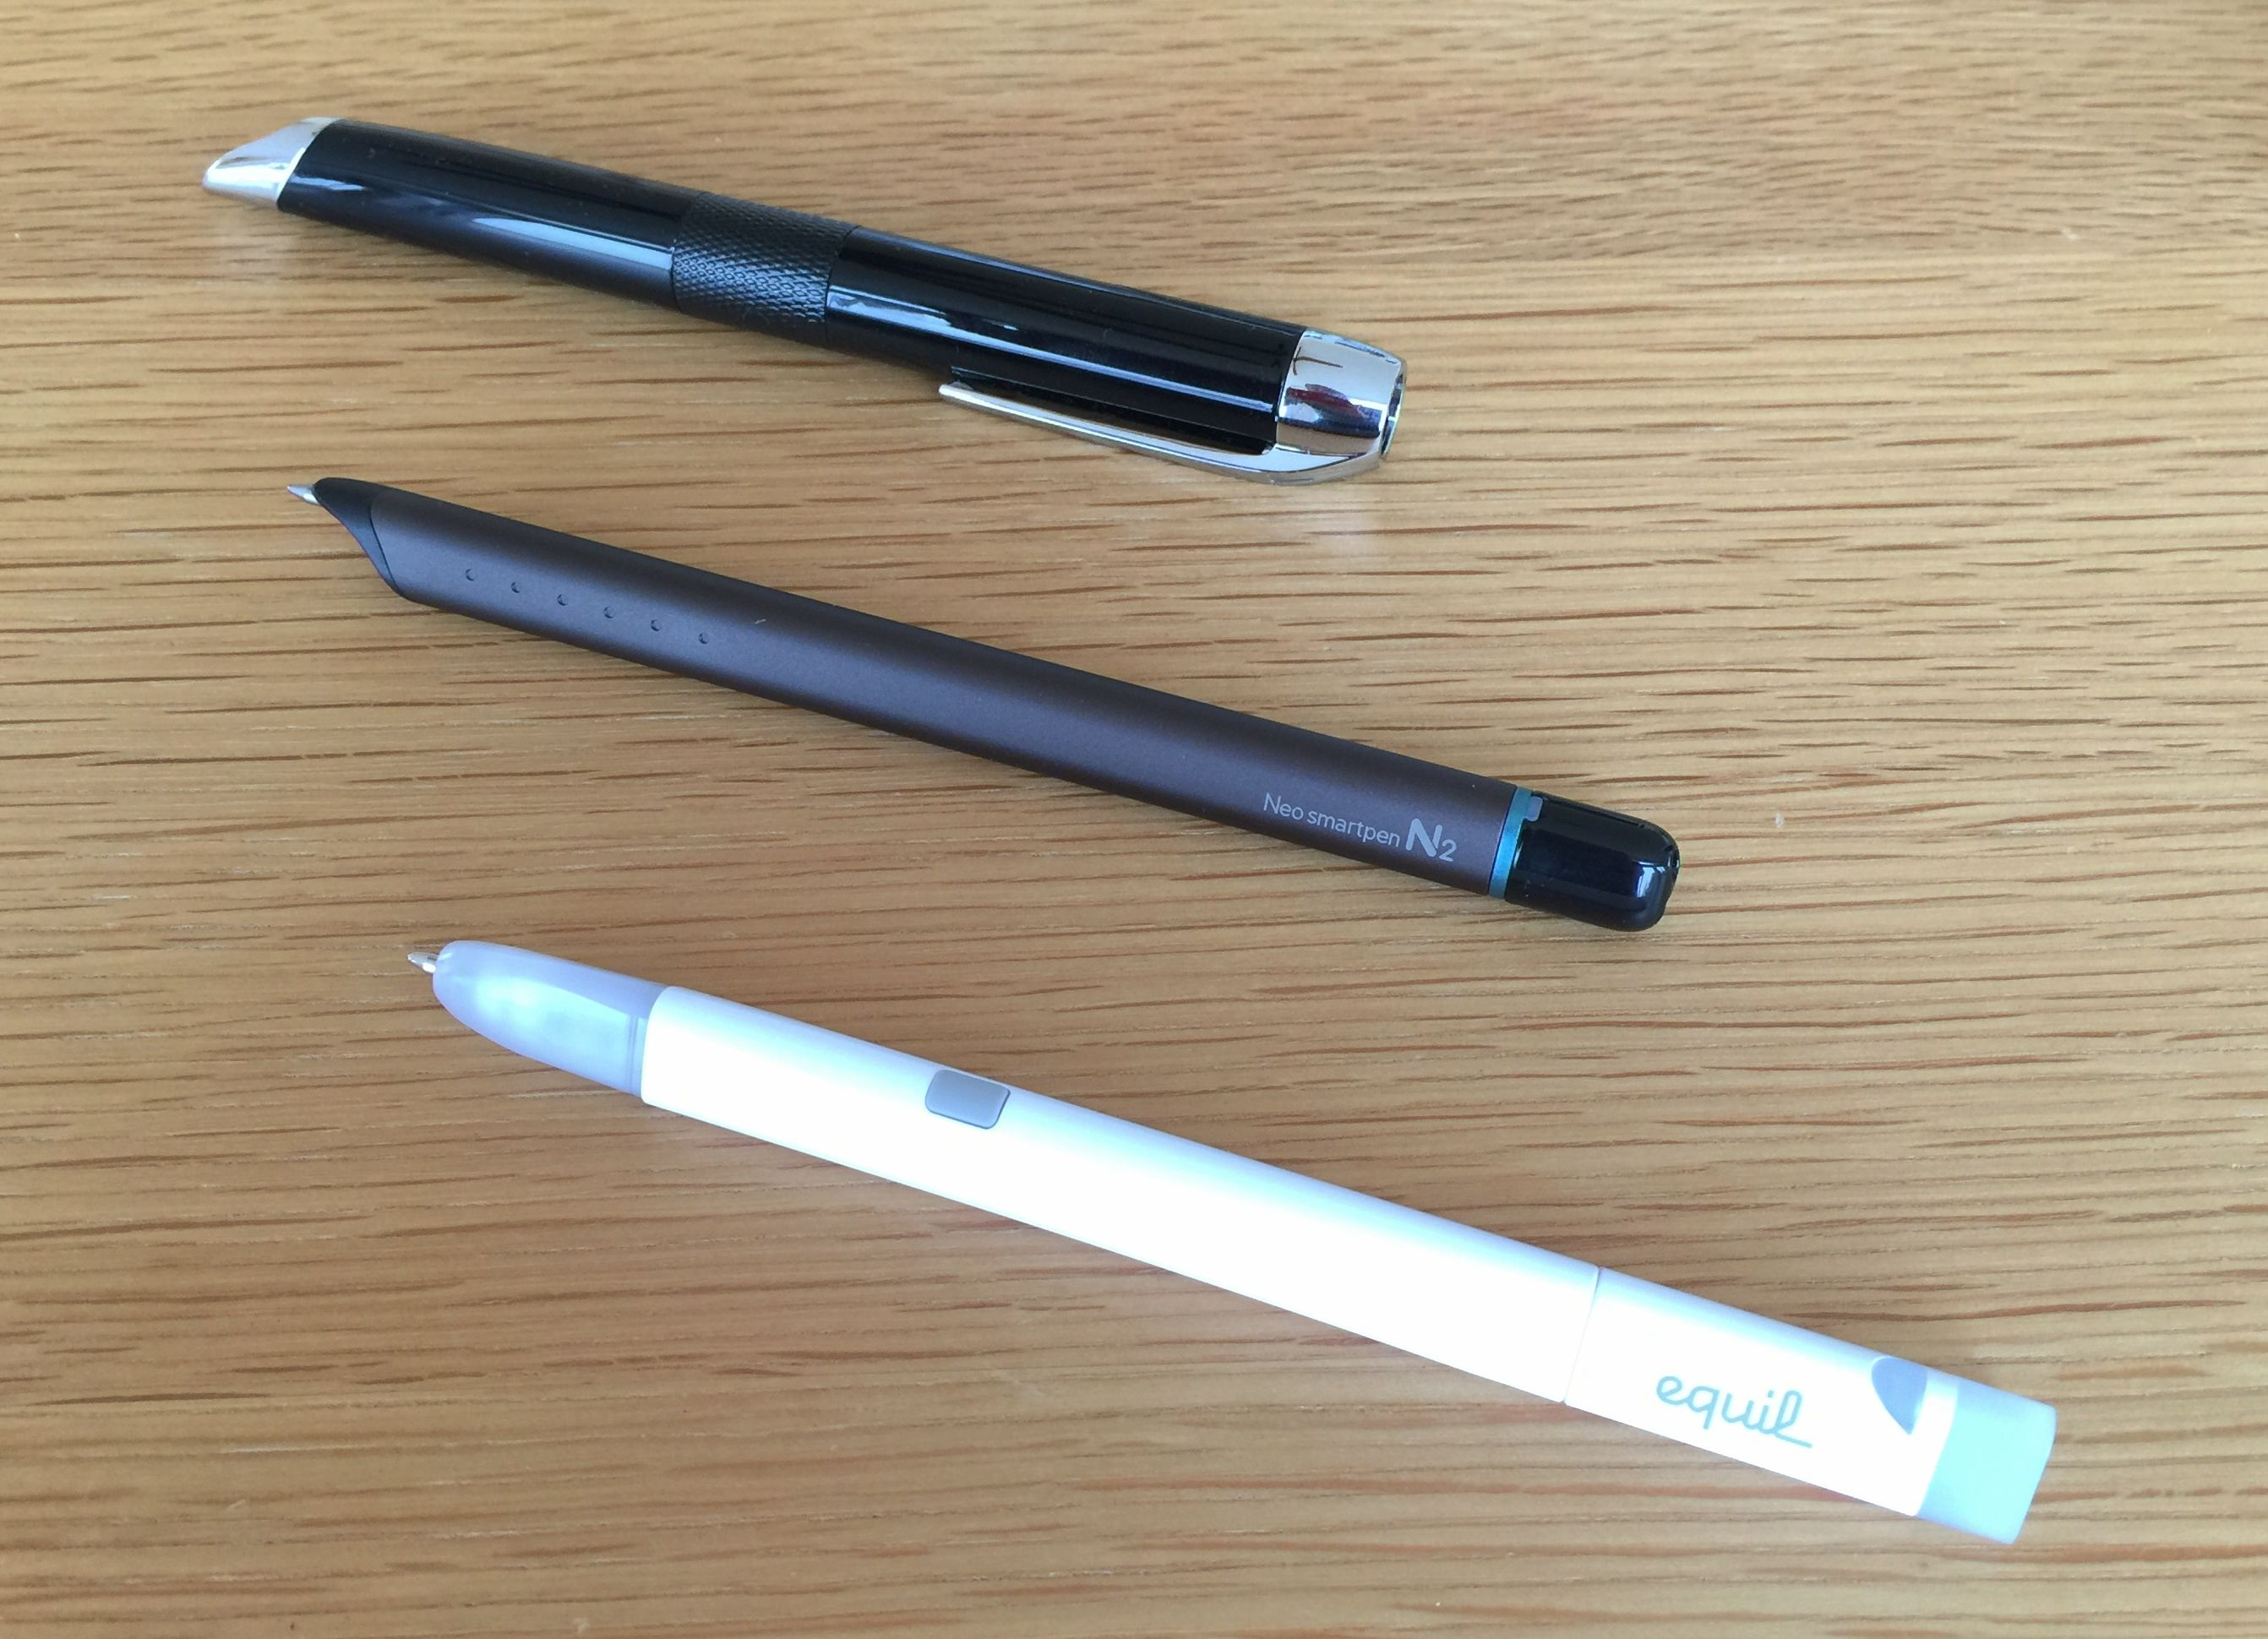 Hands-on with the Neo N2 smartpen